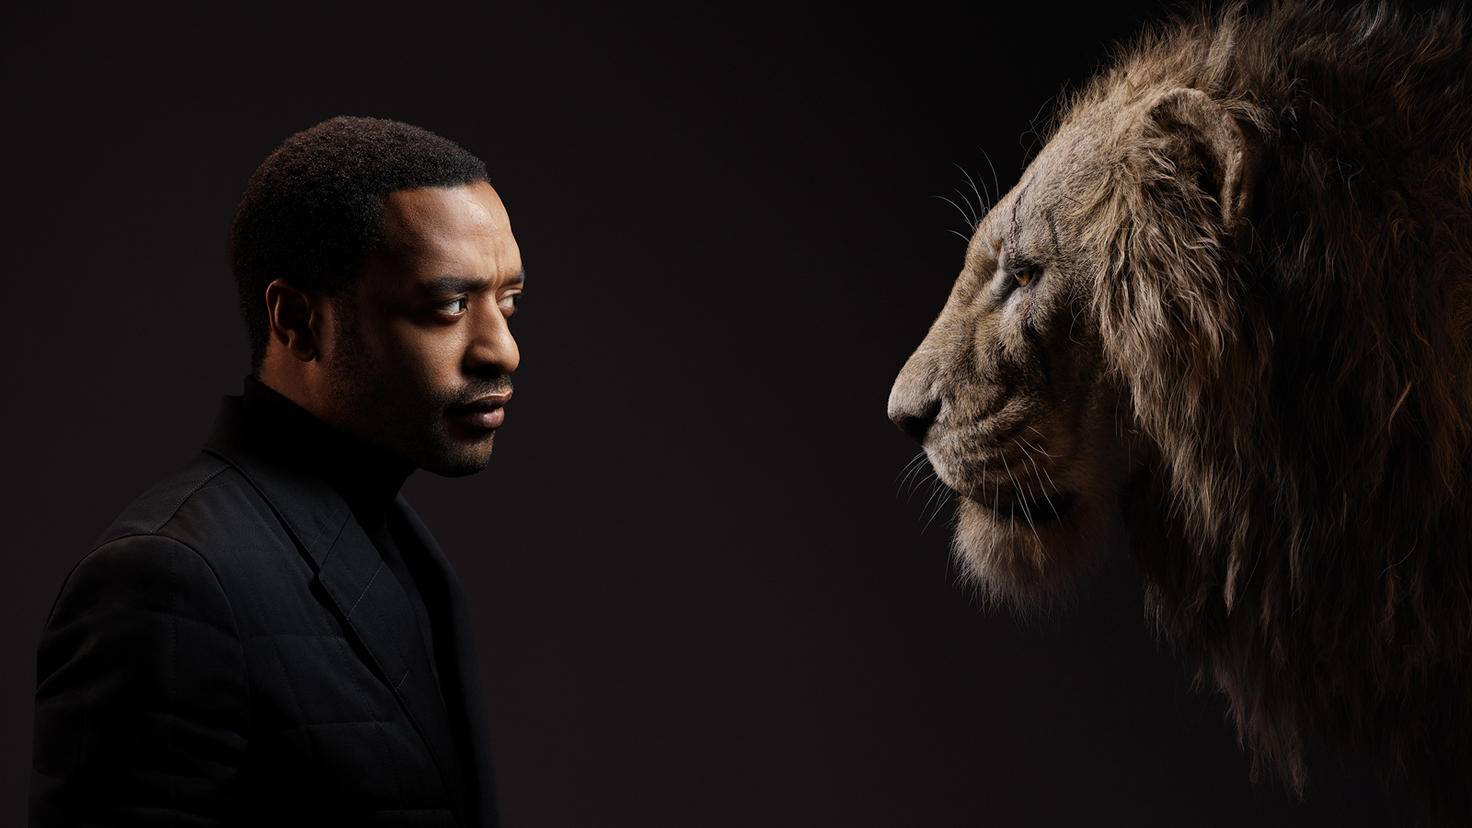 Chiwetel Ejiofor dubbed the villain Scar.